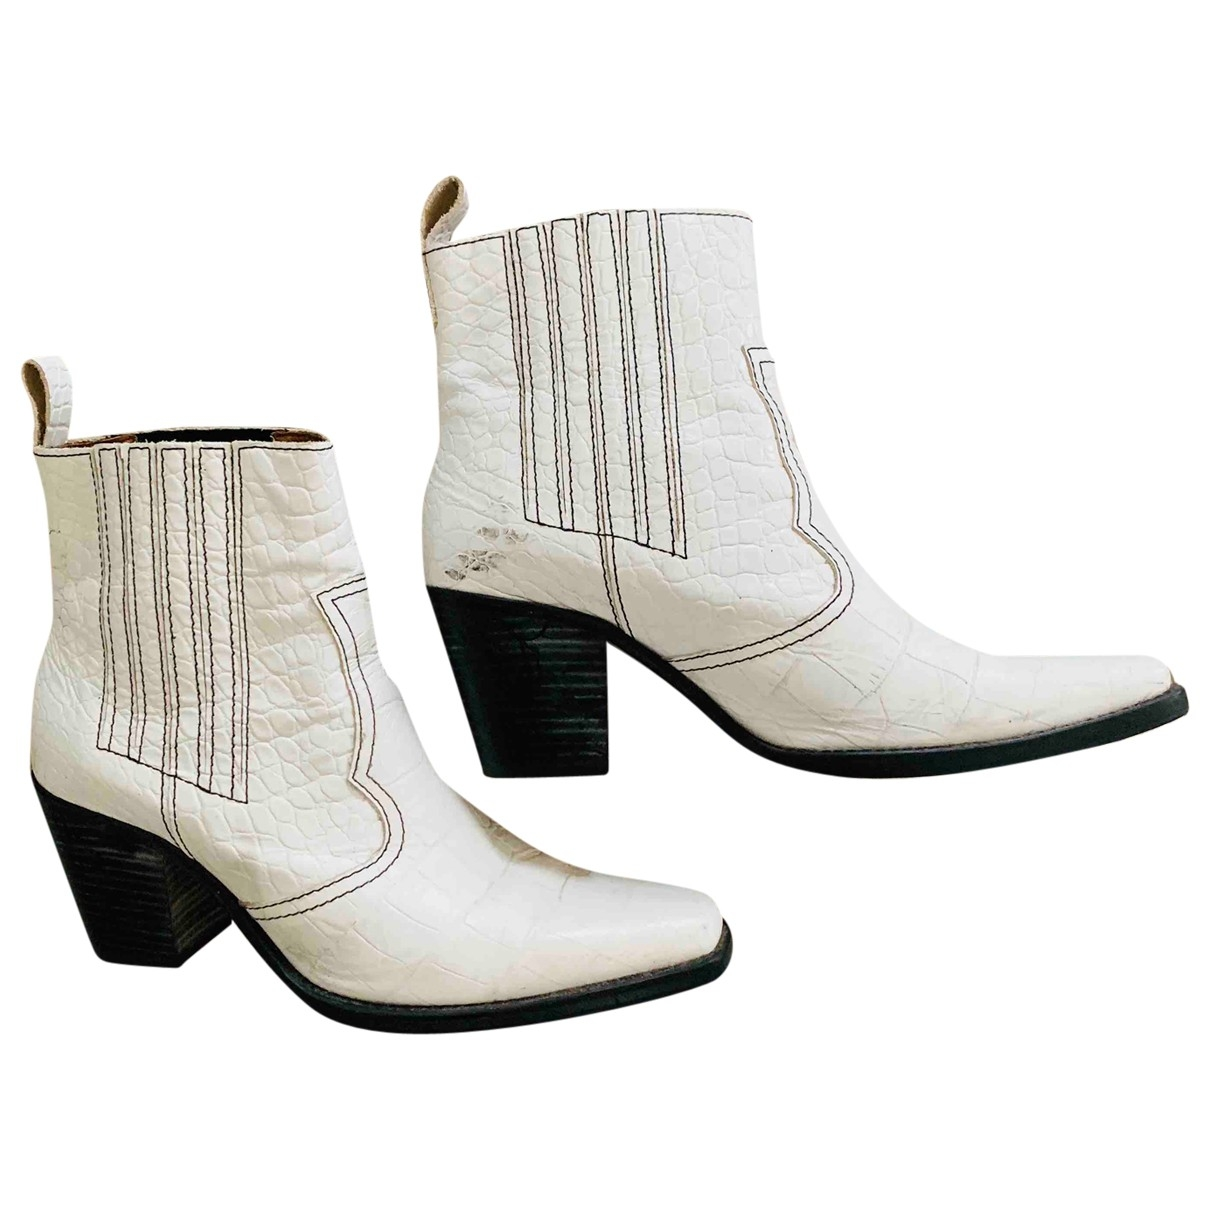 Ganni \N White Leather Boots for Women 41 EU